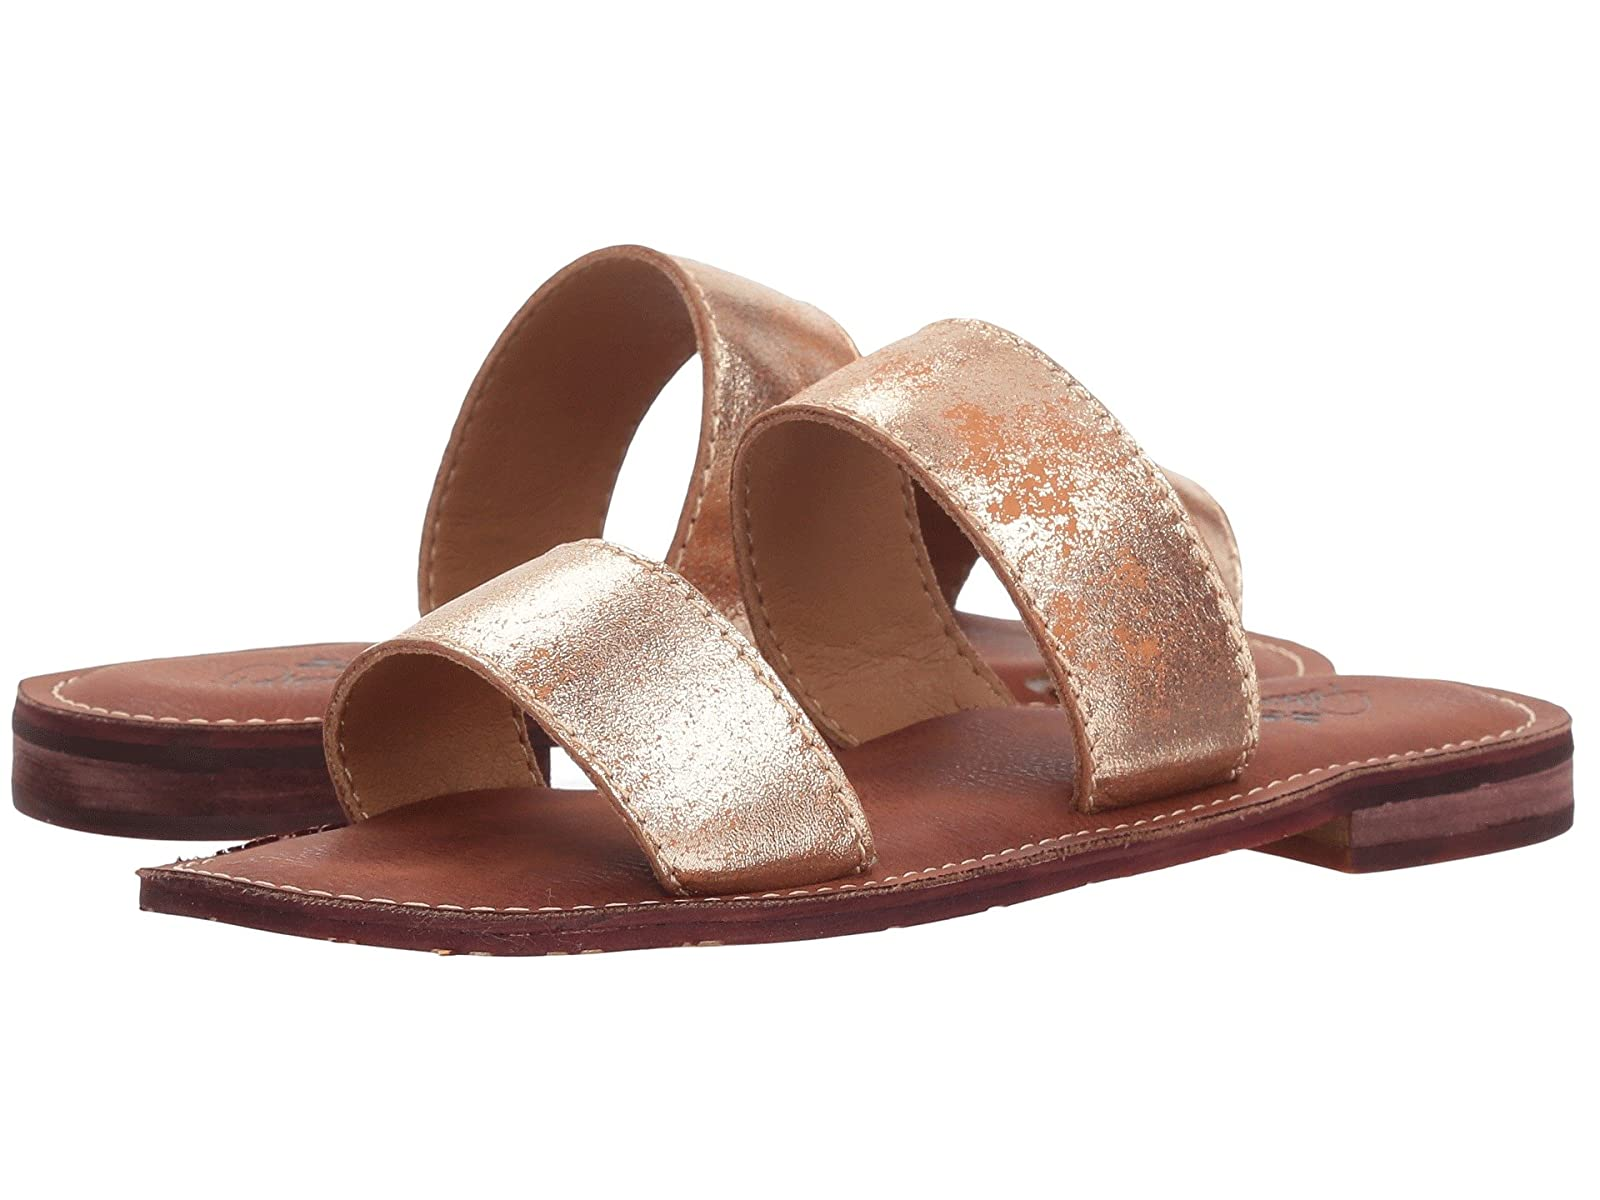 Patricia Nash FlairAtmospheric grades have affordable shoes